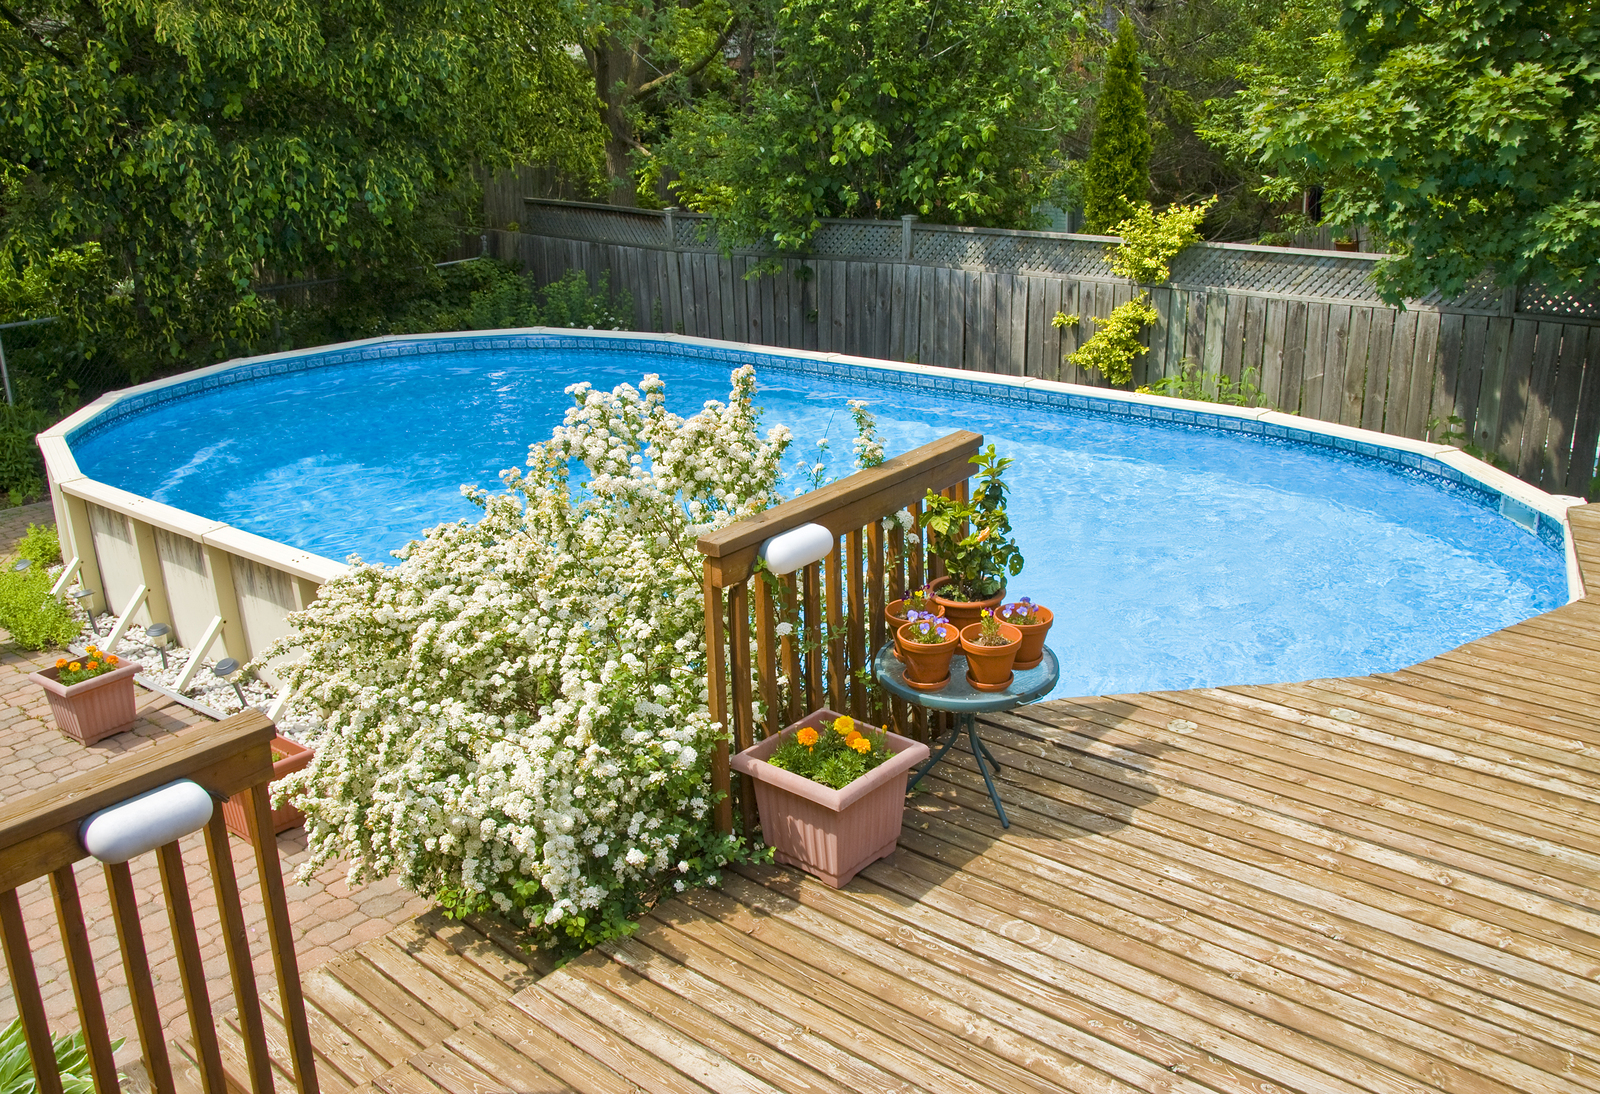 An oval shape above the ground swimming pool and wooden deck.